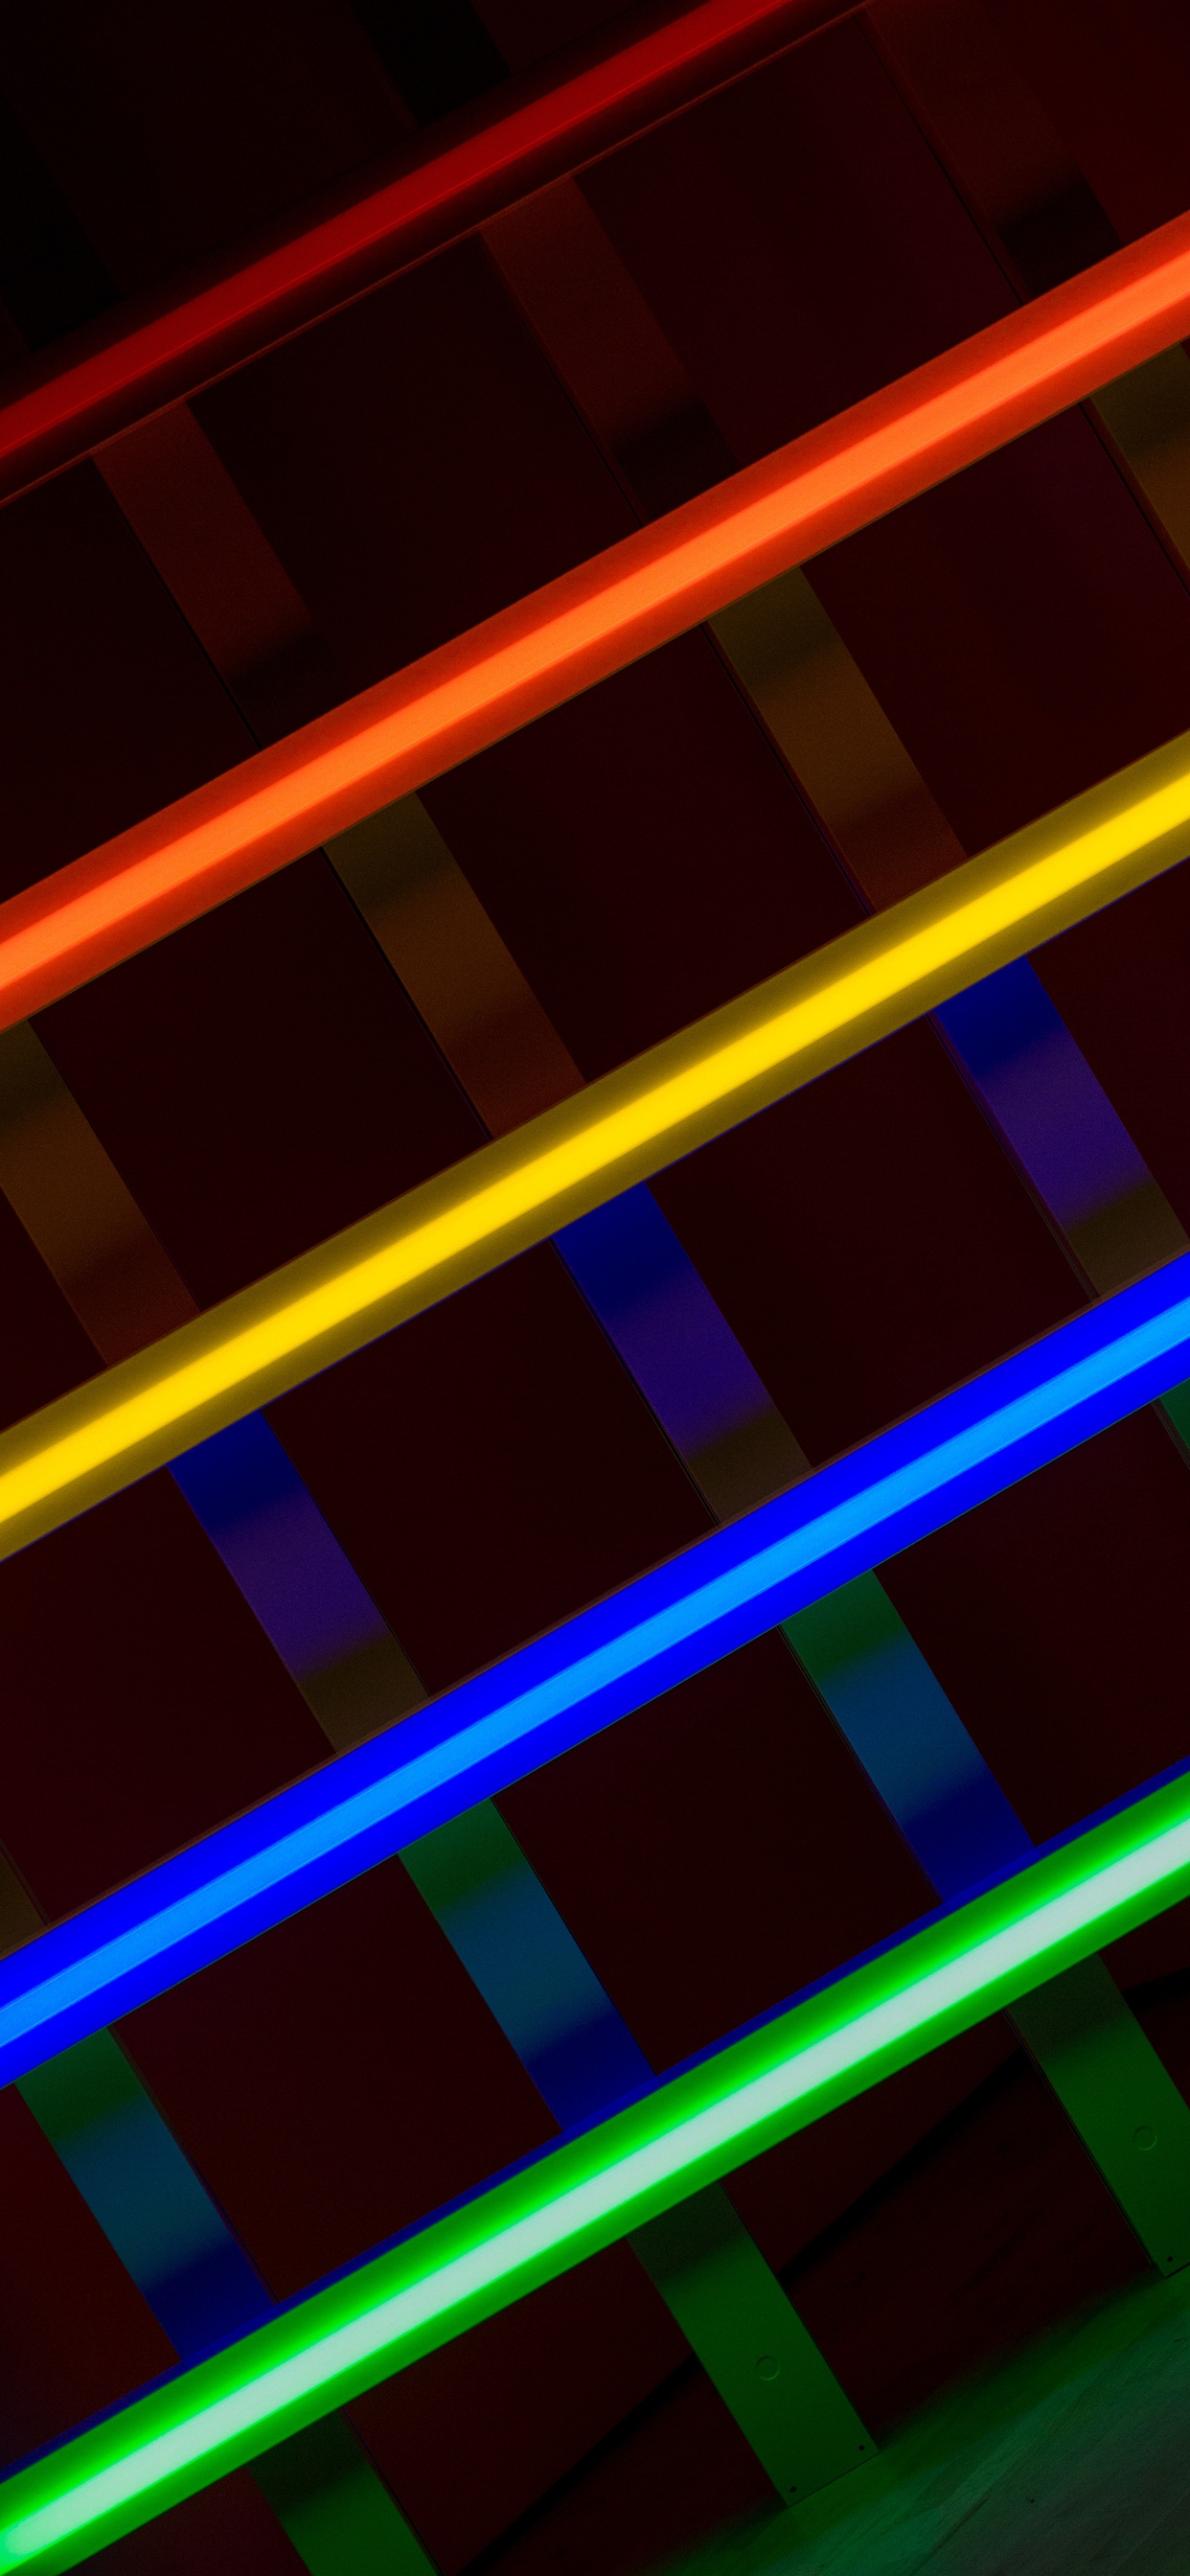 Colorful Lines Abstract Iphone Xs Max X 8 7 6 5 4 3gs Wallpaper